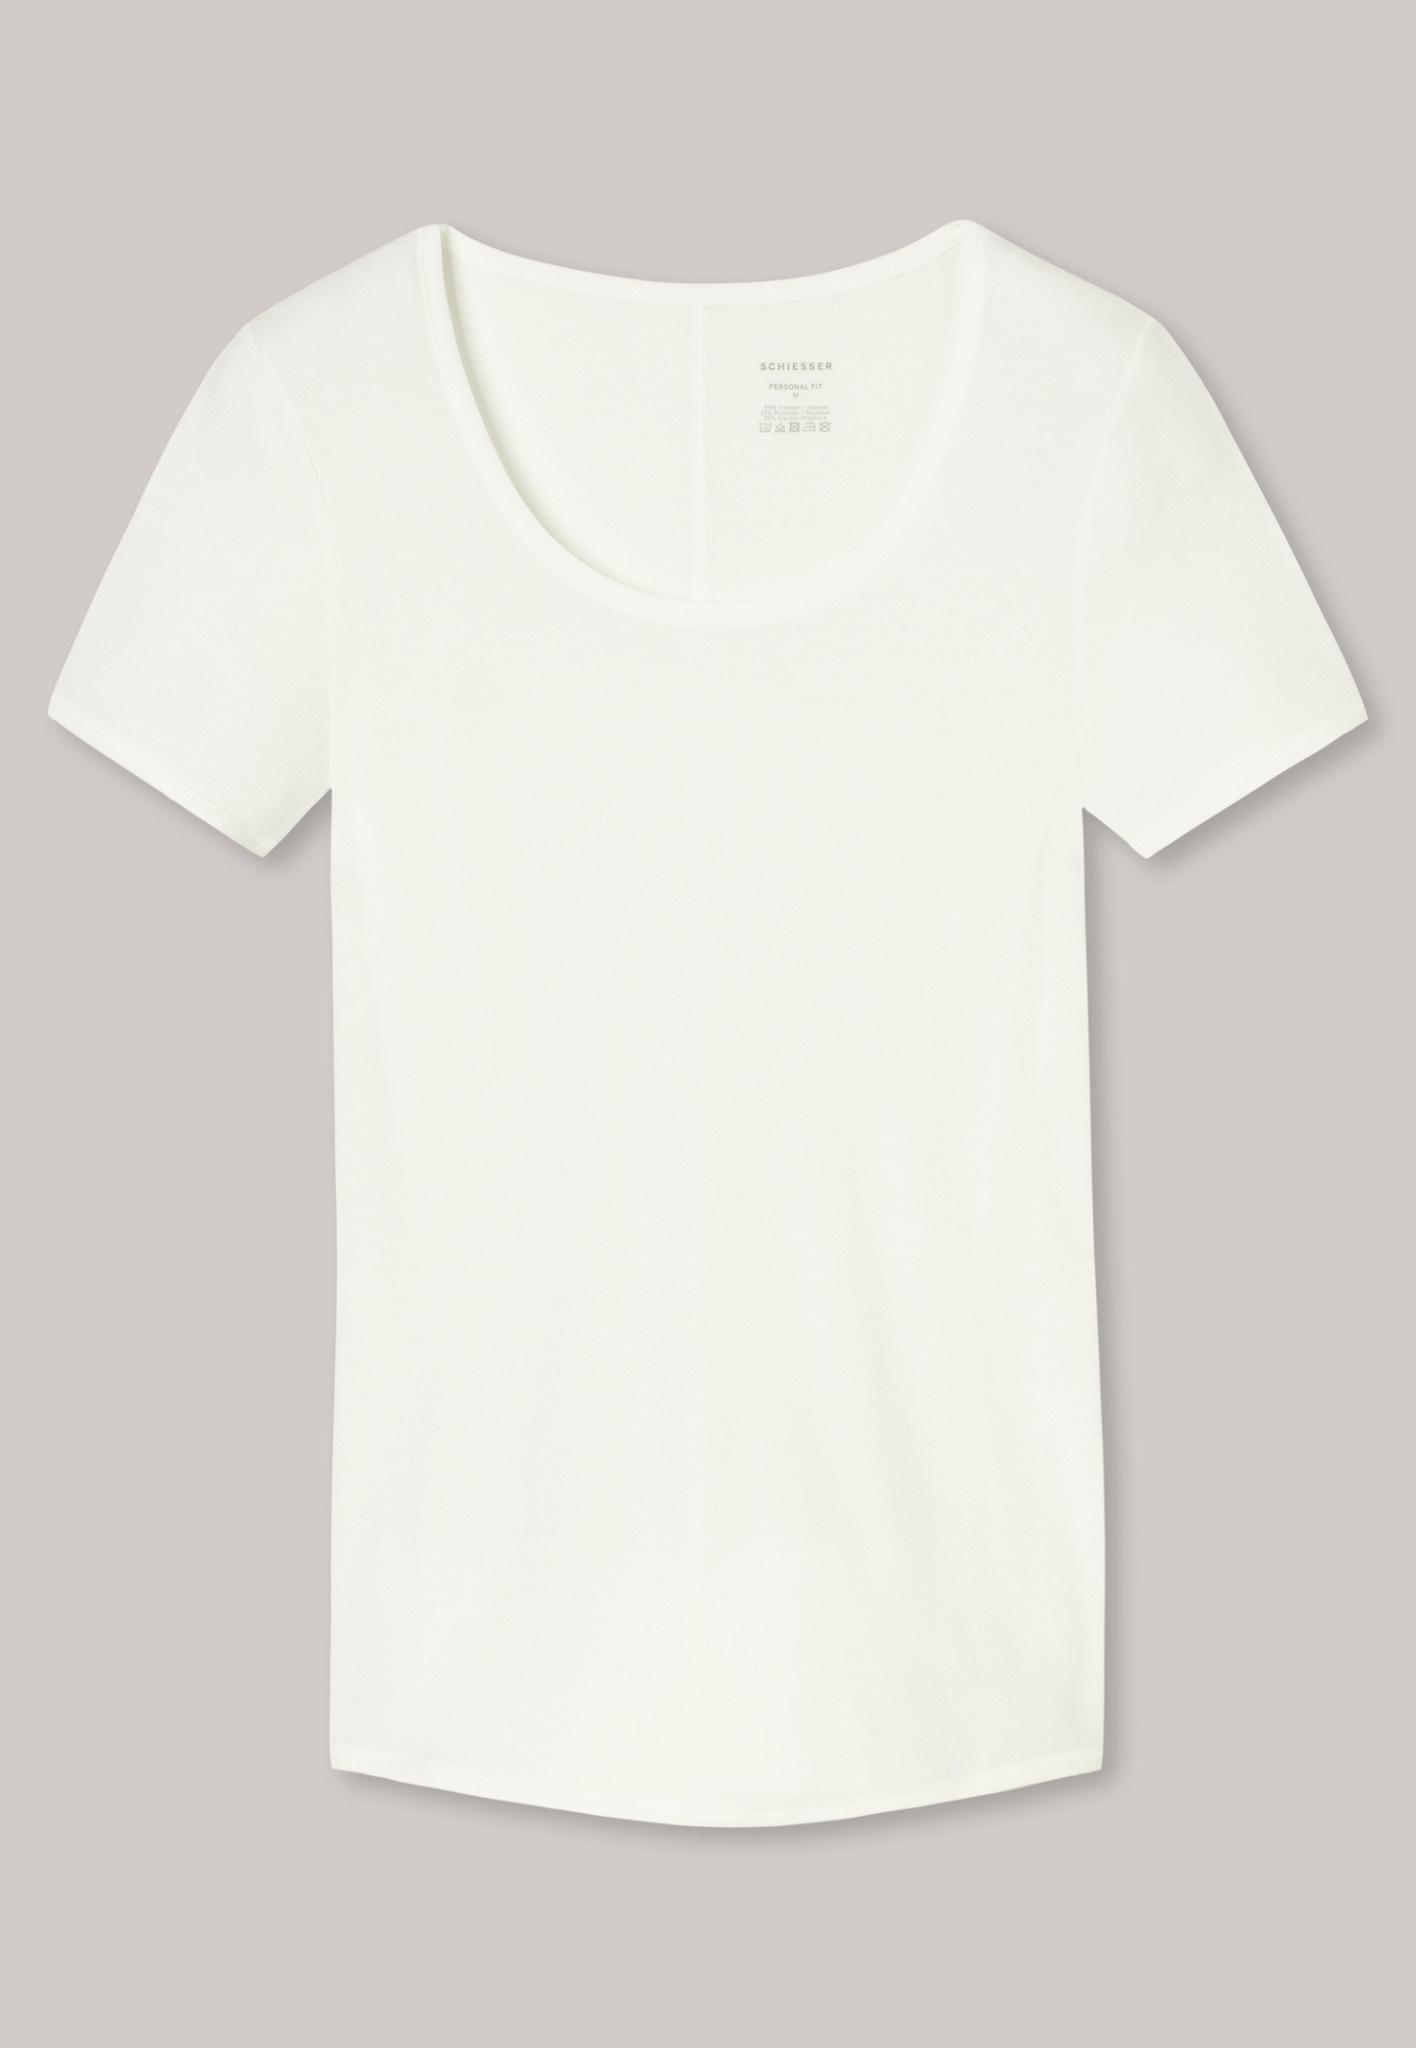 T-shirt Personal Fit 155413 - offwhite-3